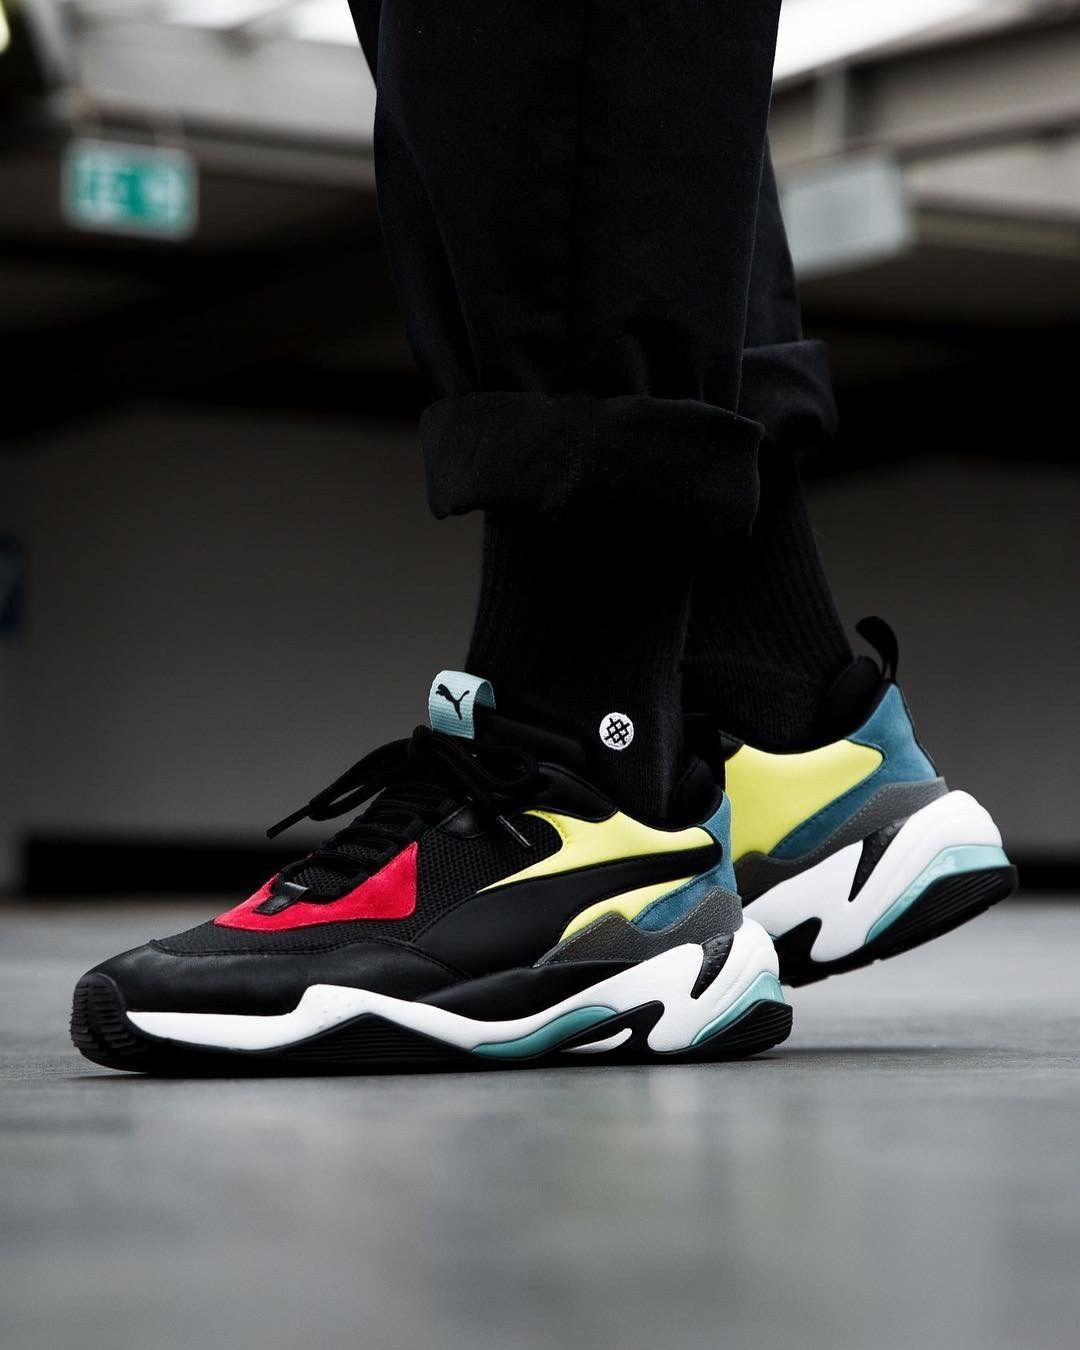 PUMA Thunder Spectra | Dad shoes, Puma sneakers, Fashion